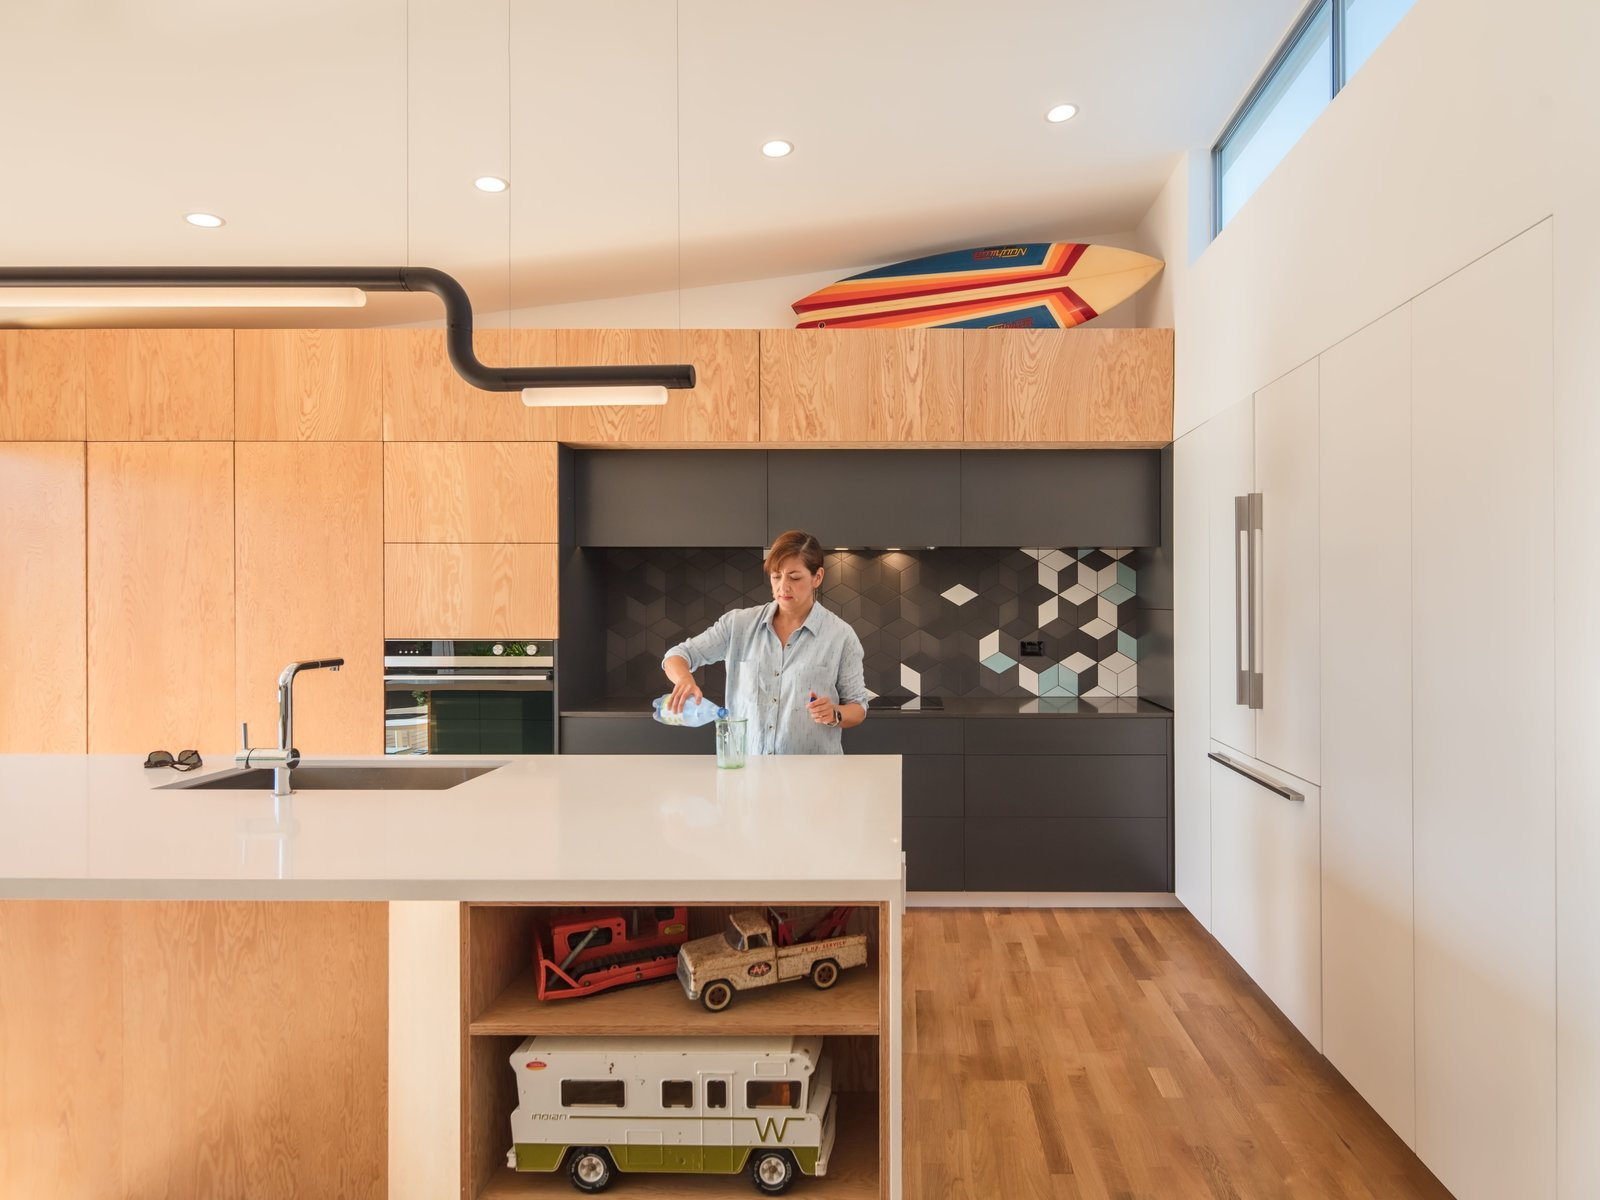 Grohe kitchen Faucet + Tonka Winnebago toy was inspo for exterior wood siding  The Beach Lab by Surfside Projects